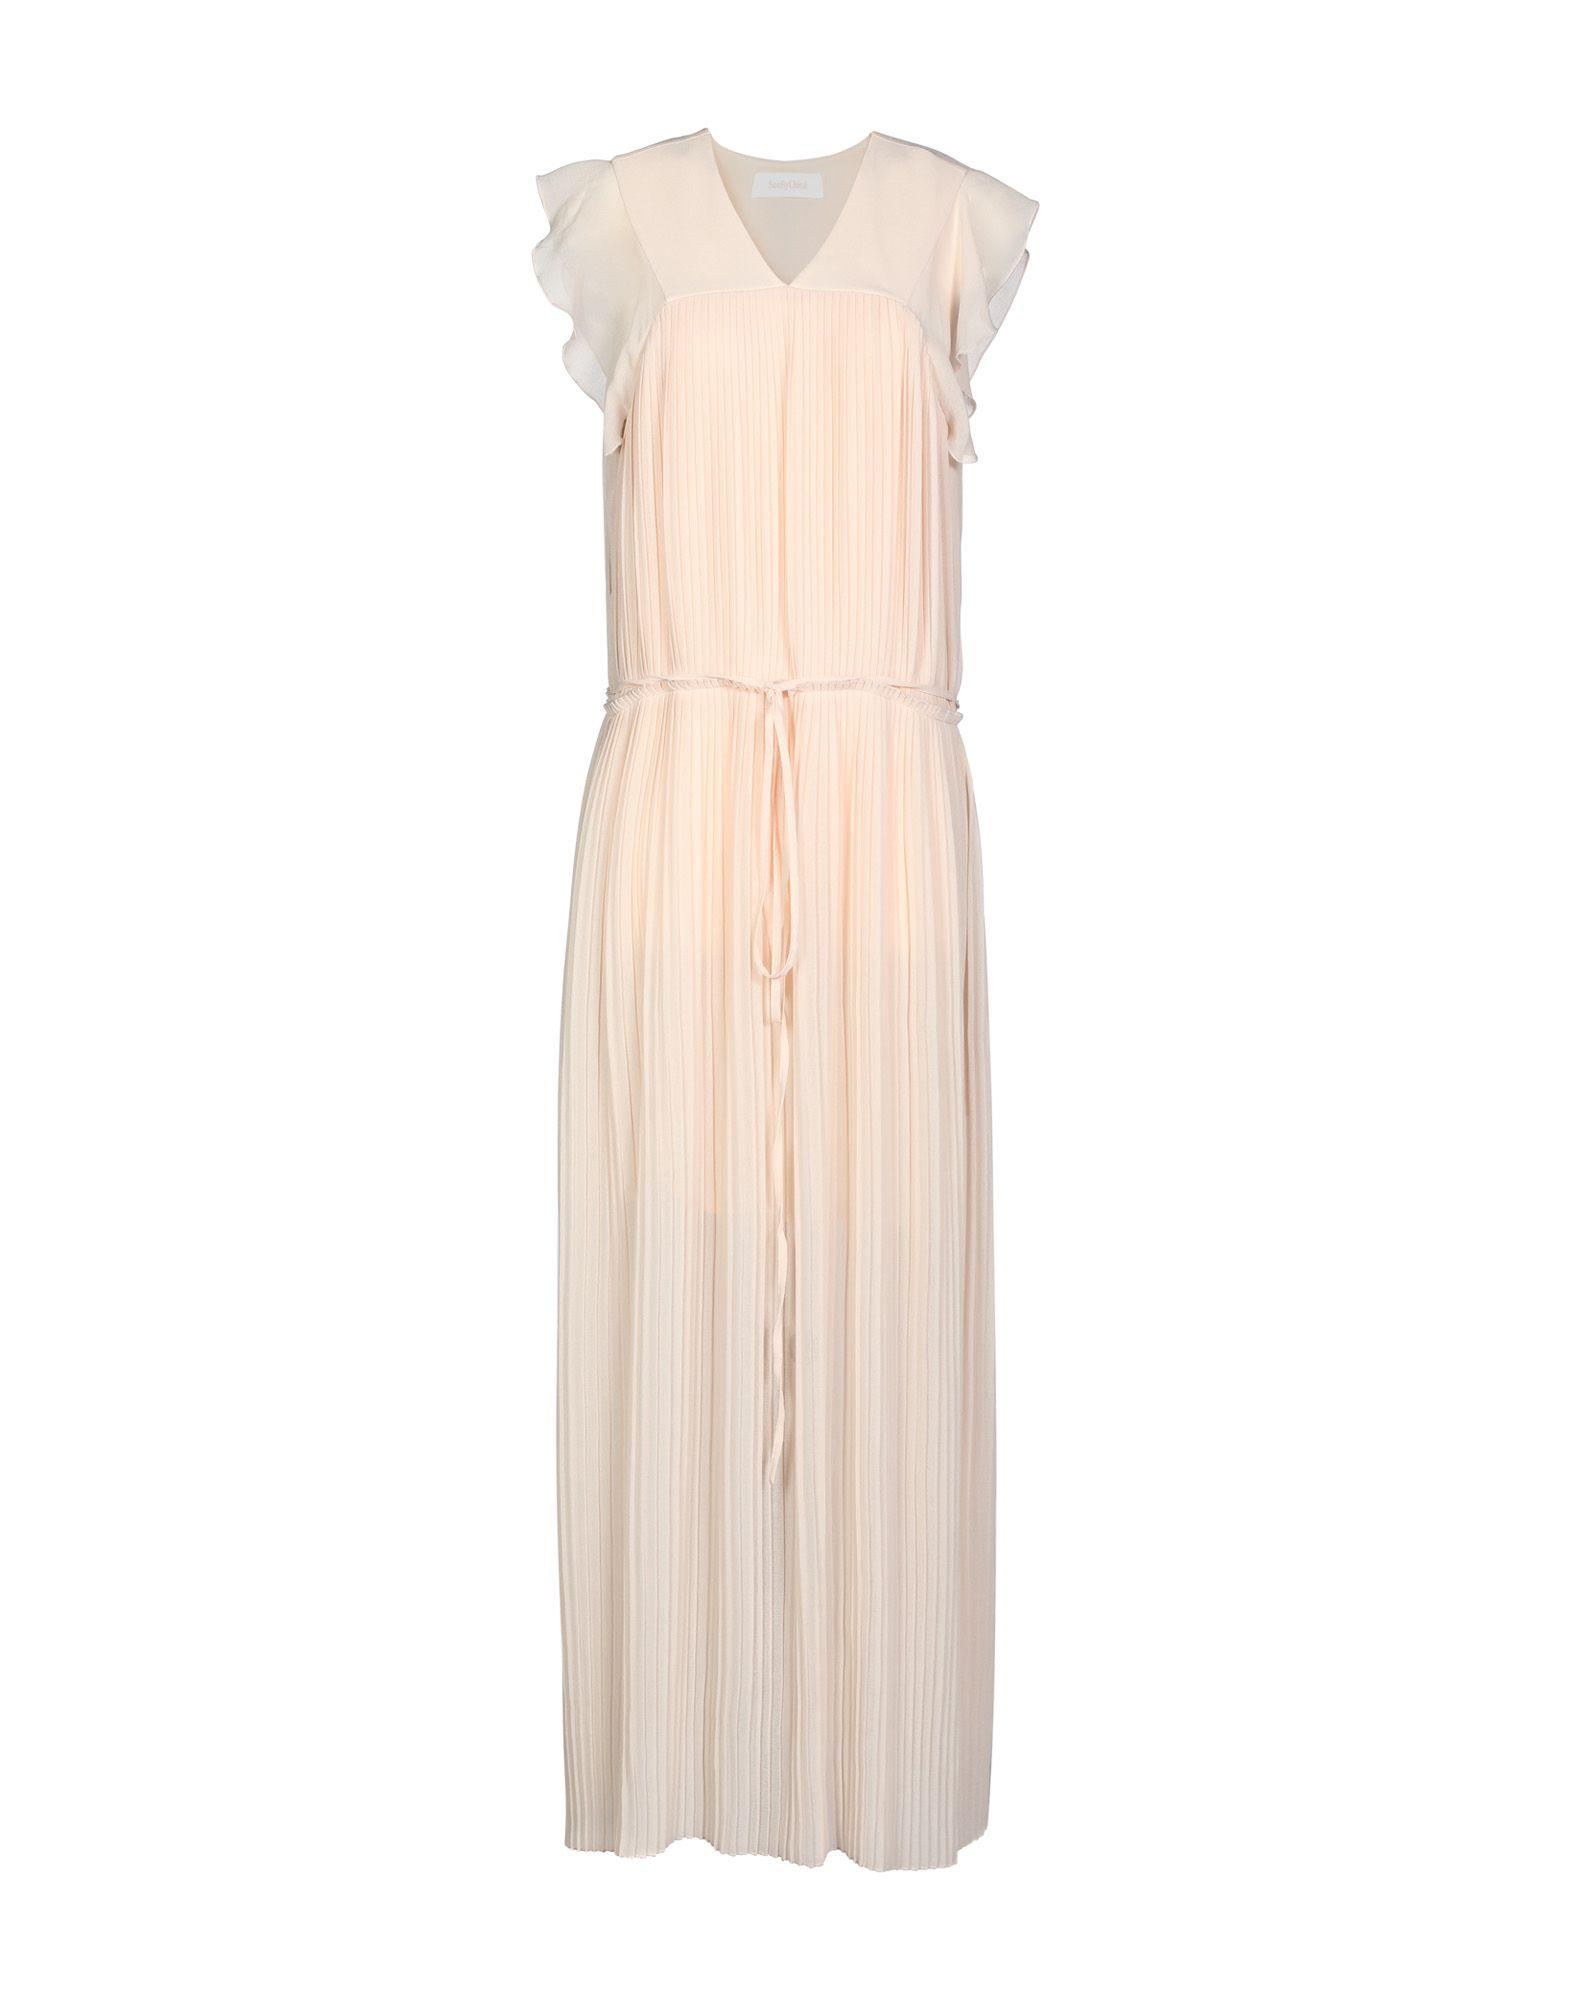 Long Dress In Pale Pink